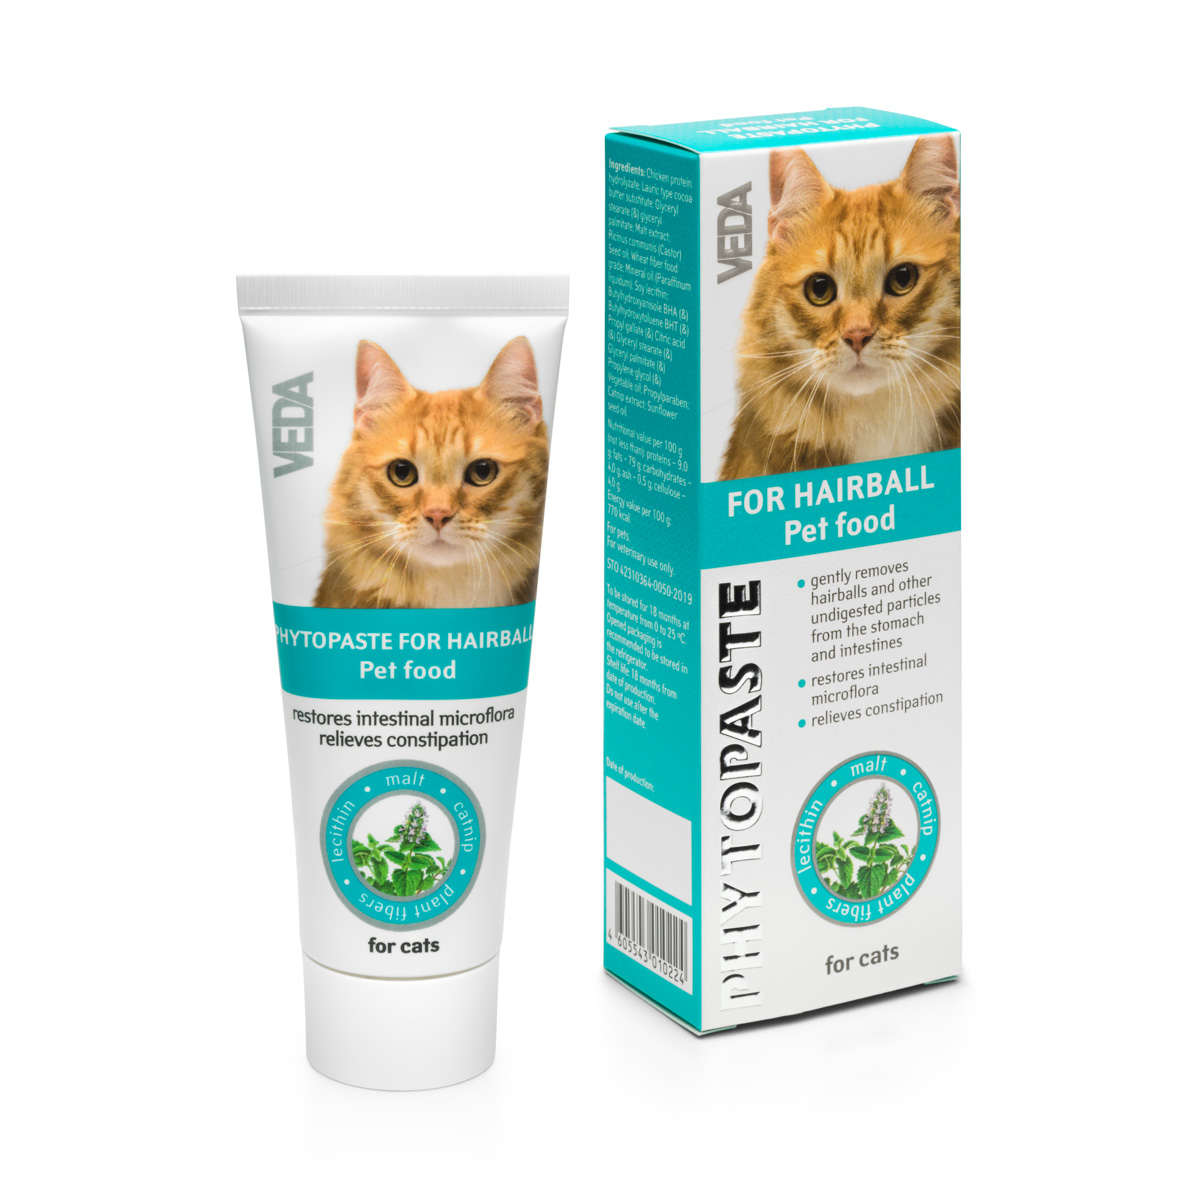 Phytoshampoo-balm for moult dogs cats